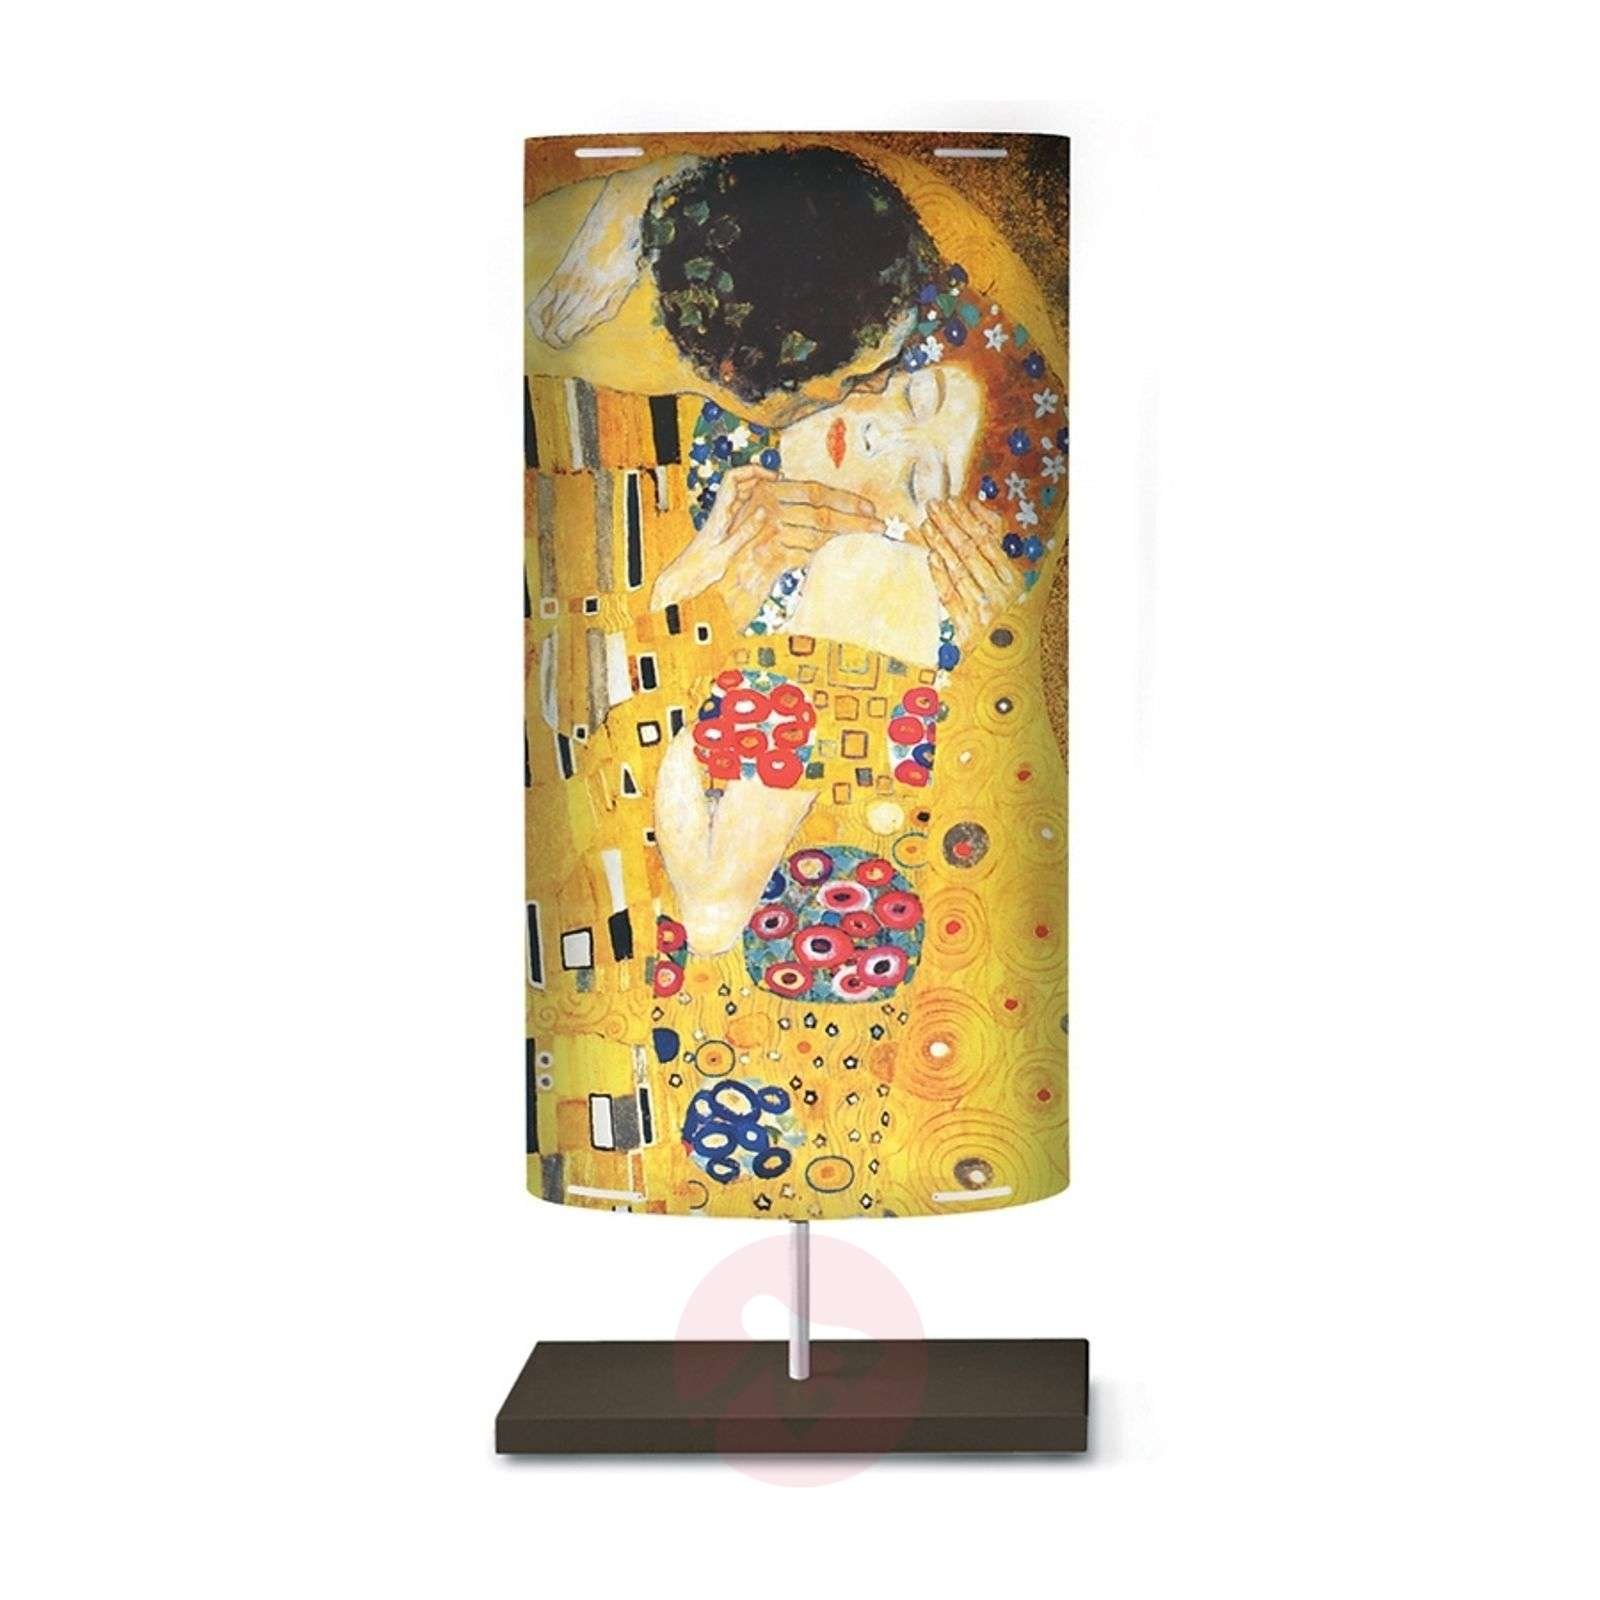 Art motif on the floor lamp Klimt III-1056047-01